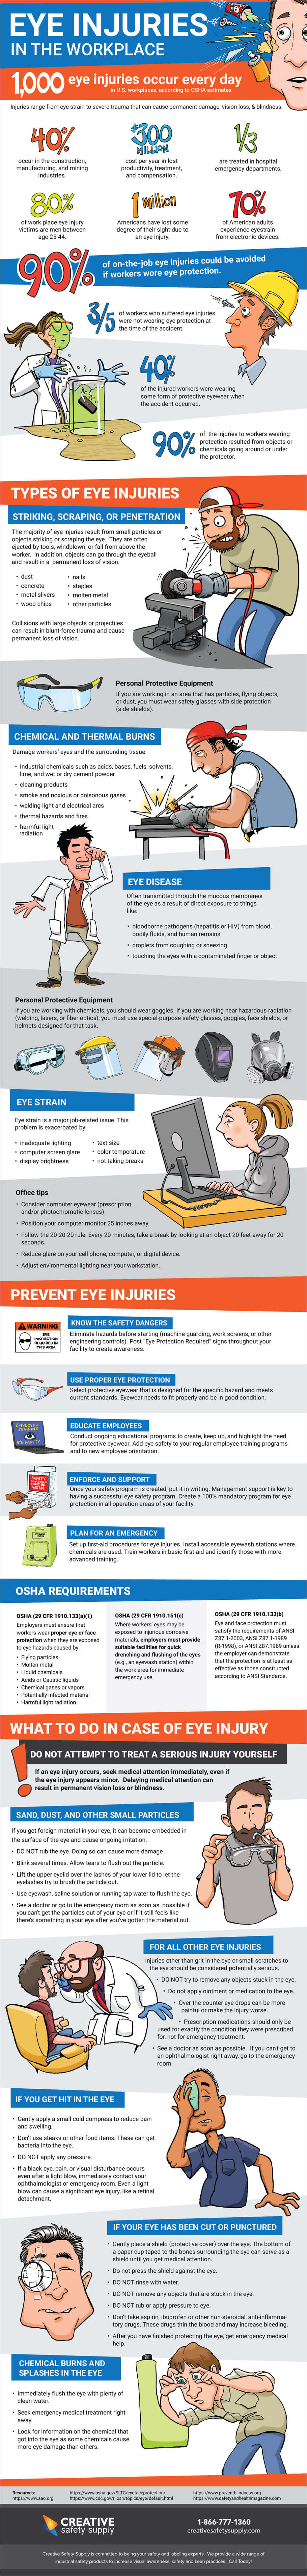 eye Injuries in the Workplace Infographic